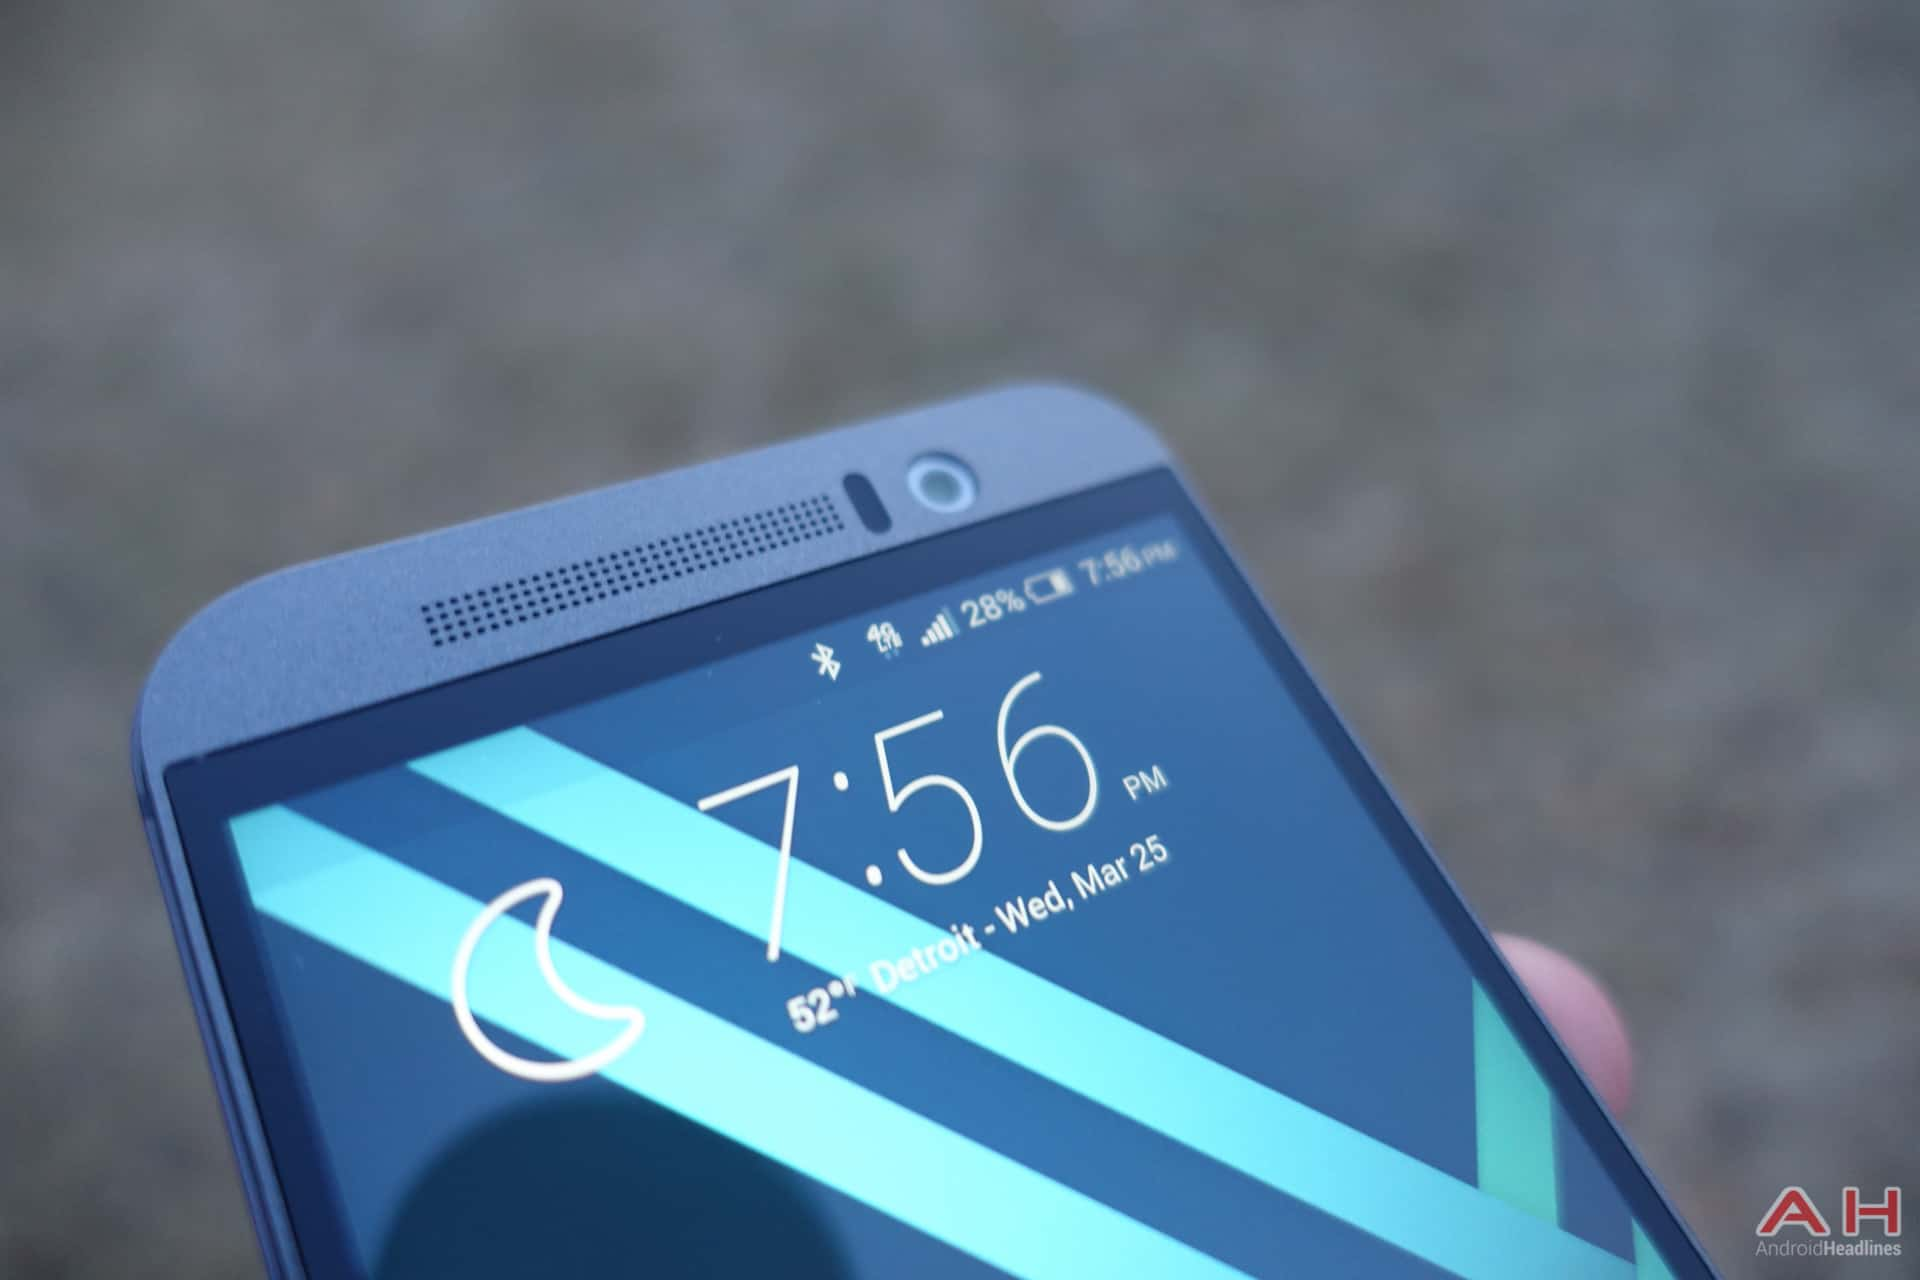 HTC-One-M9-Review-AH-17